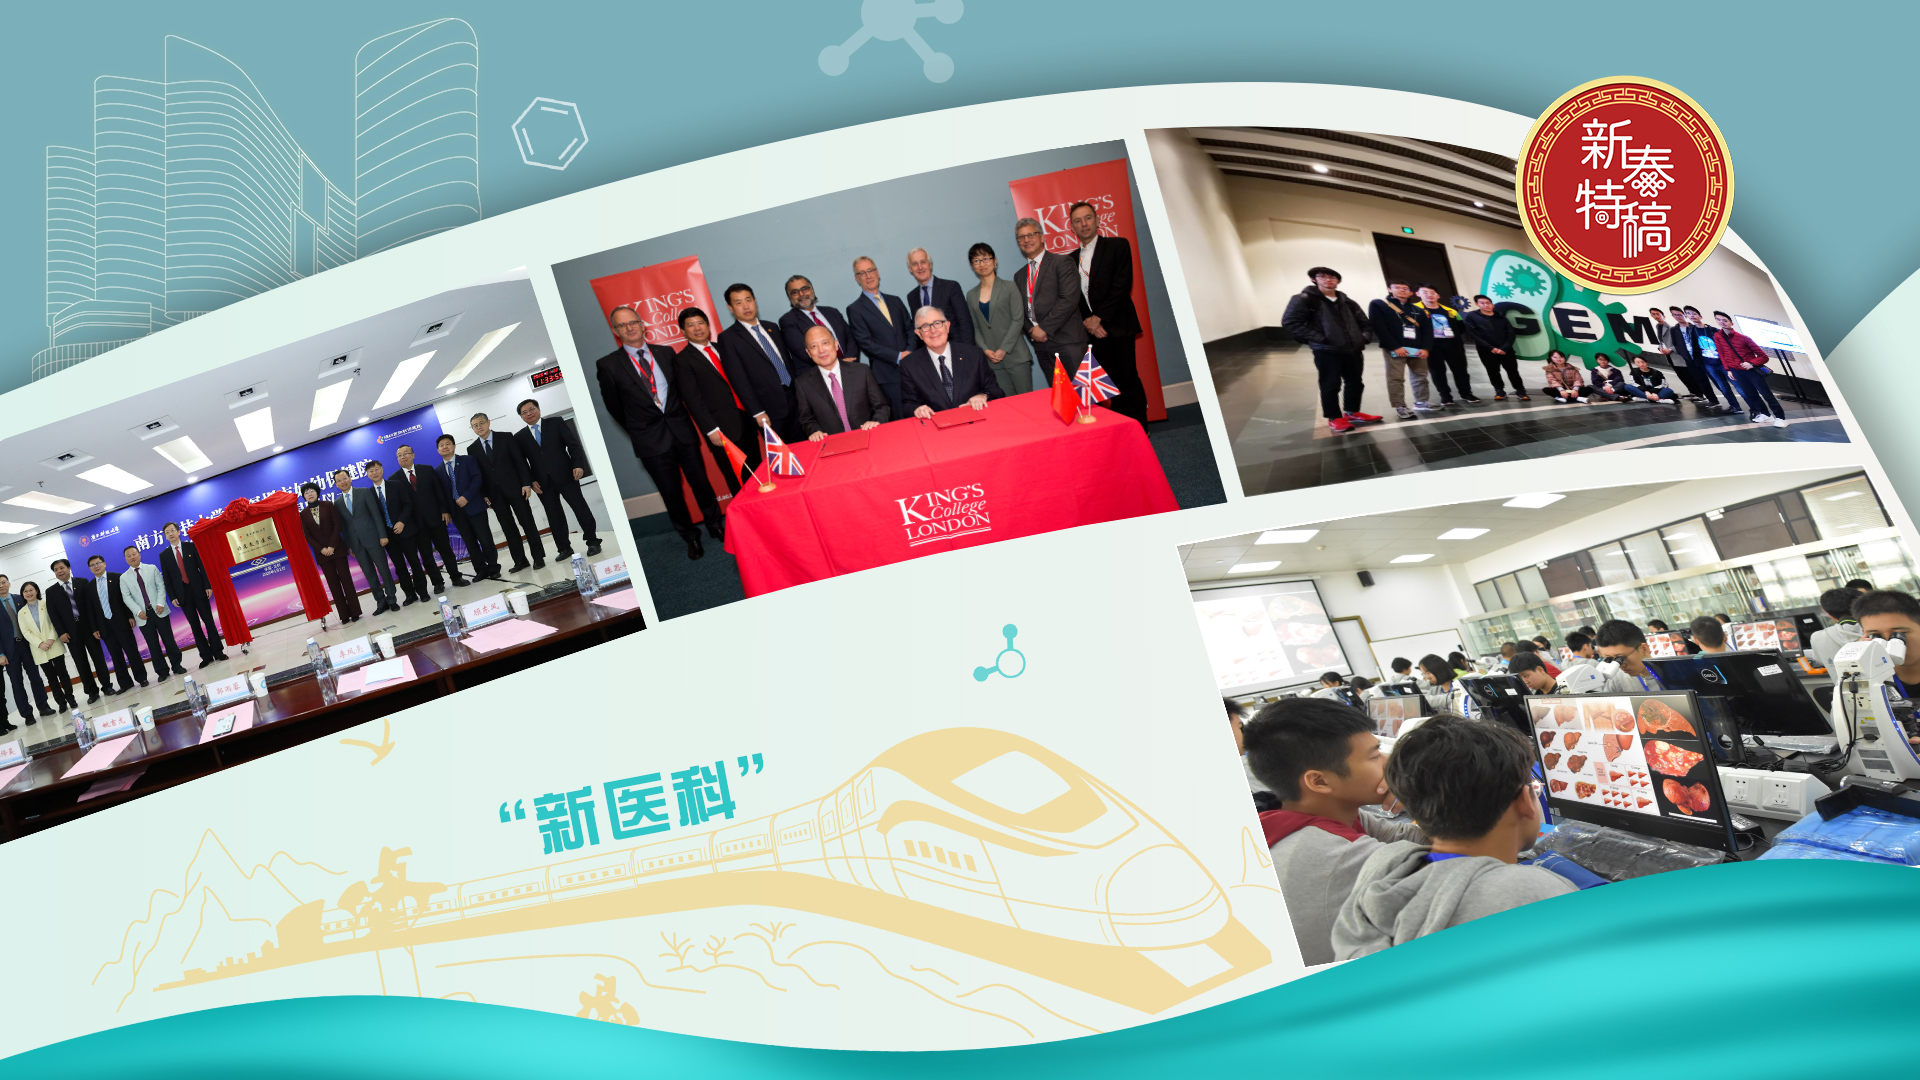 Lunar New Year Report: School of Medicine on the fast development track